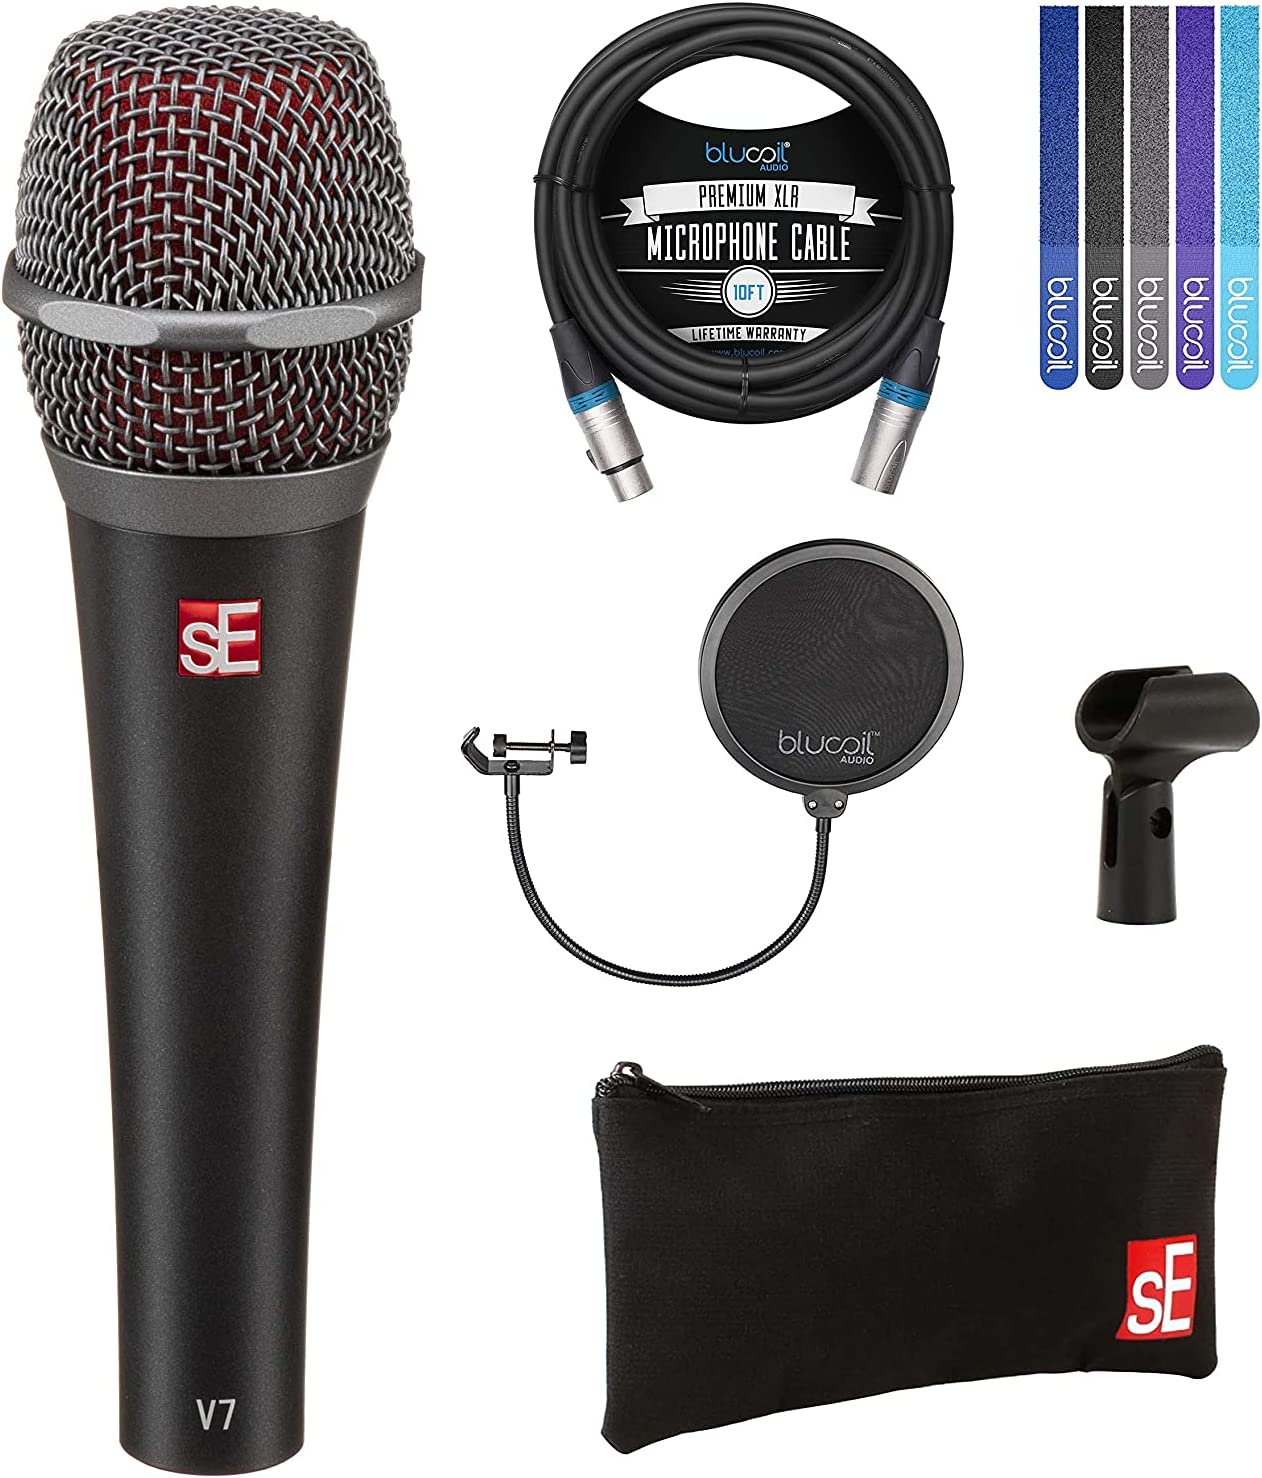 sE Electronics discount Albuquerque Mall V7 Supercardioid Dynamic for Microphone Vocals an